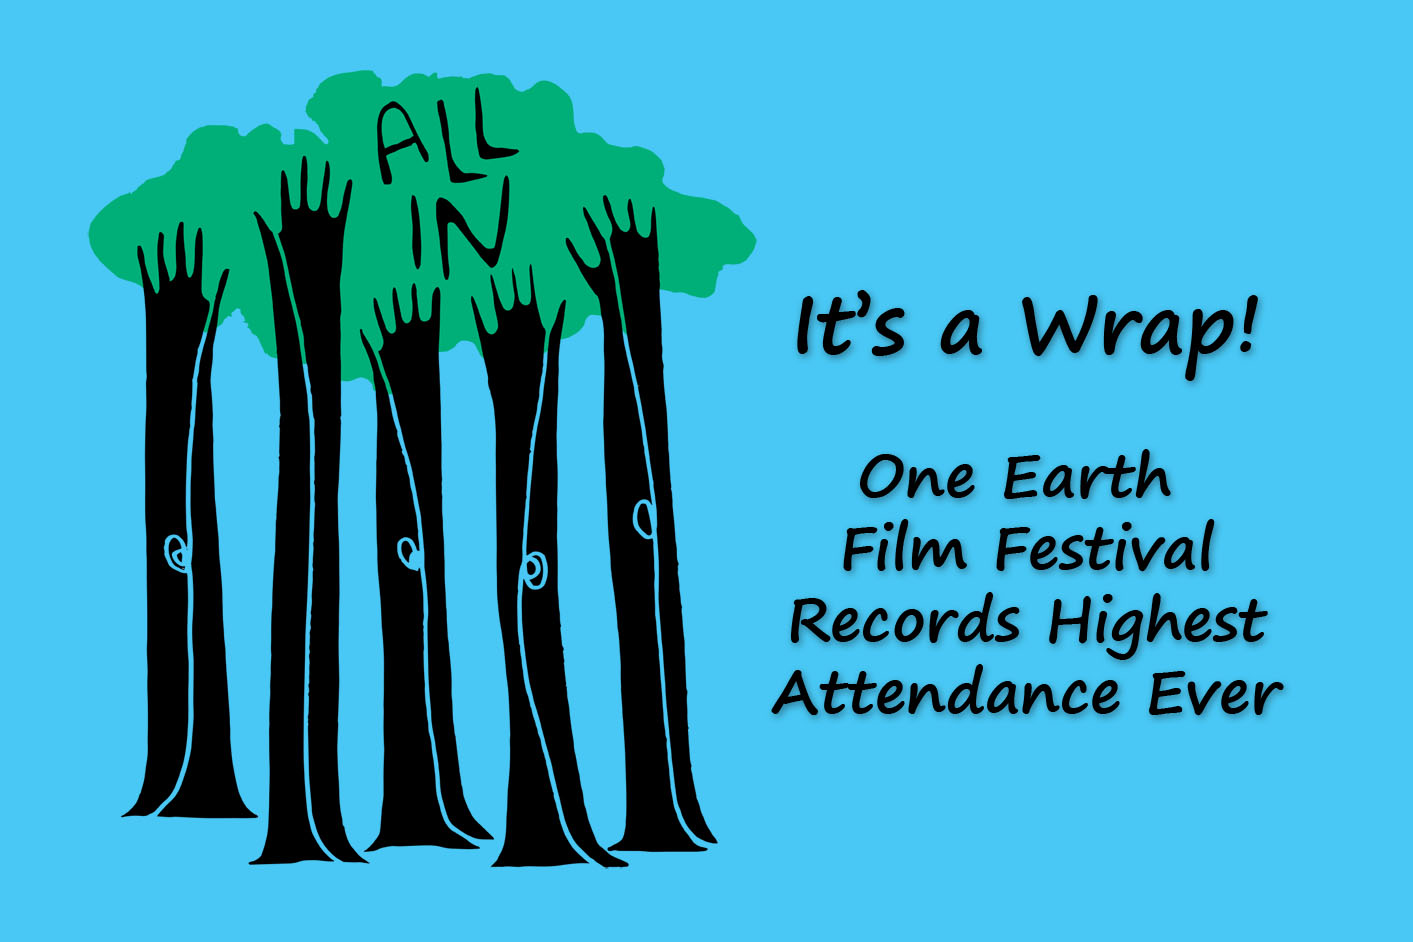 One Earth Film Fest Records Highest Attendance Ever.